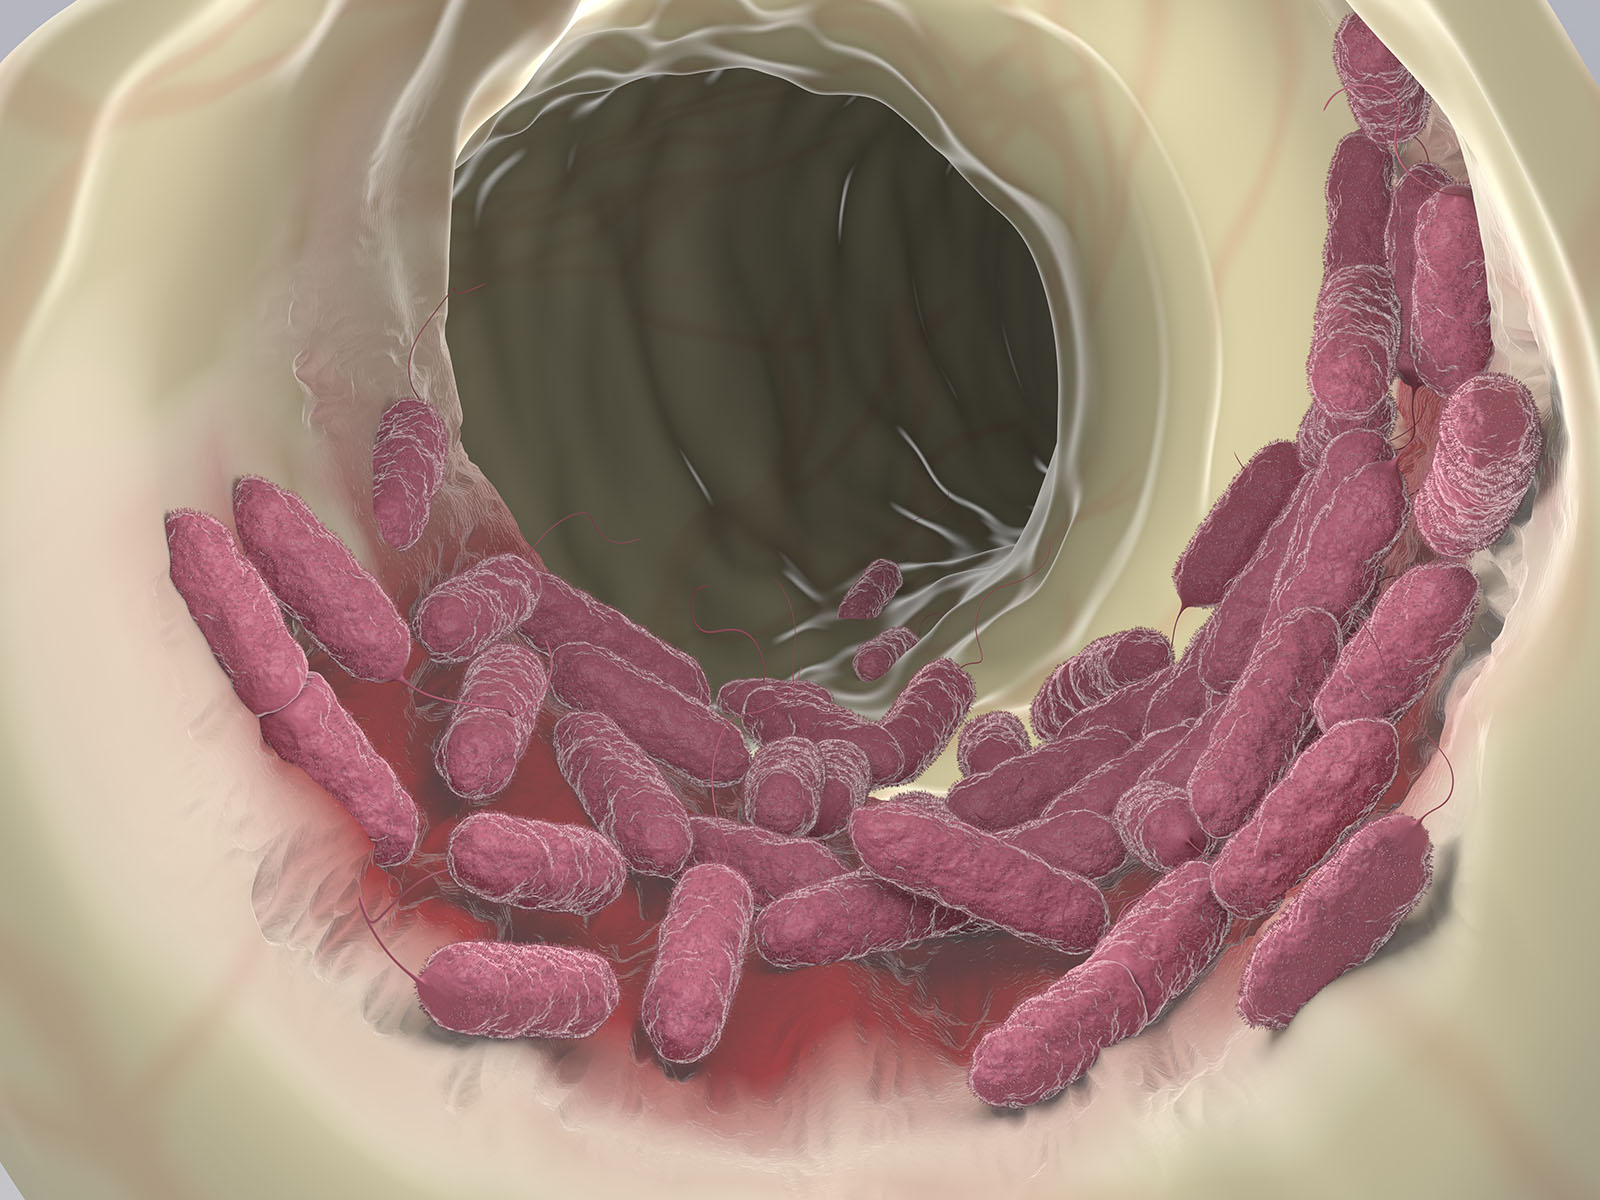 medical illustration of Pseudomonas is a Gram-negative aerobic bacteria that is hearty in harsh environment and resistant to many antibiotics.